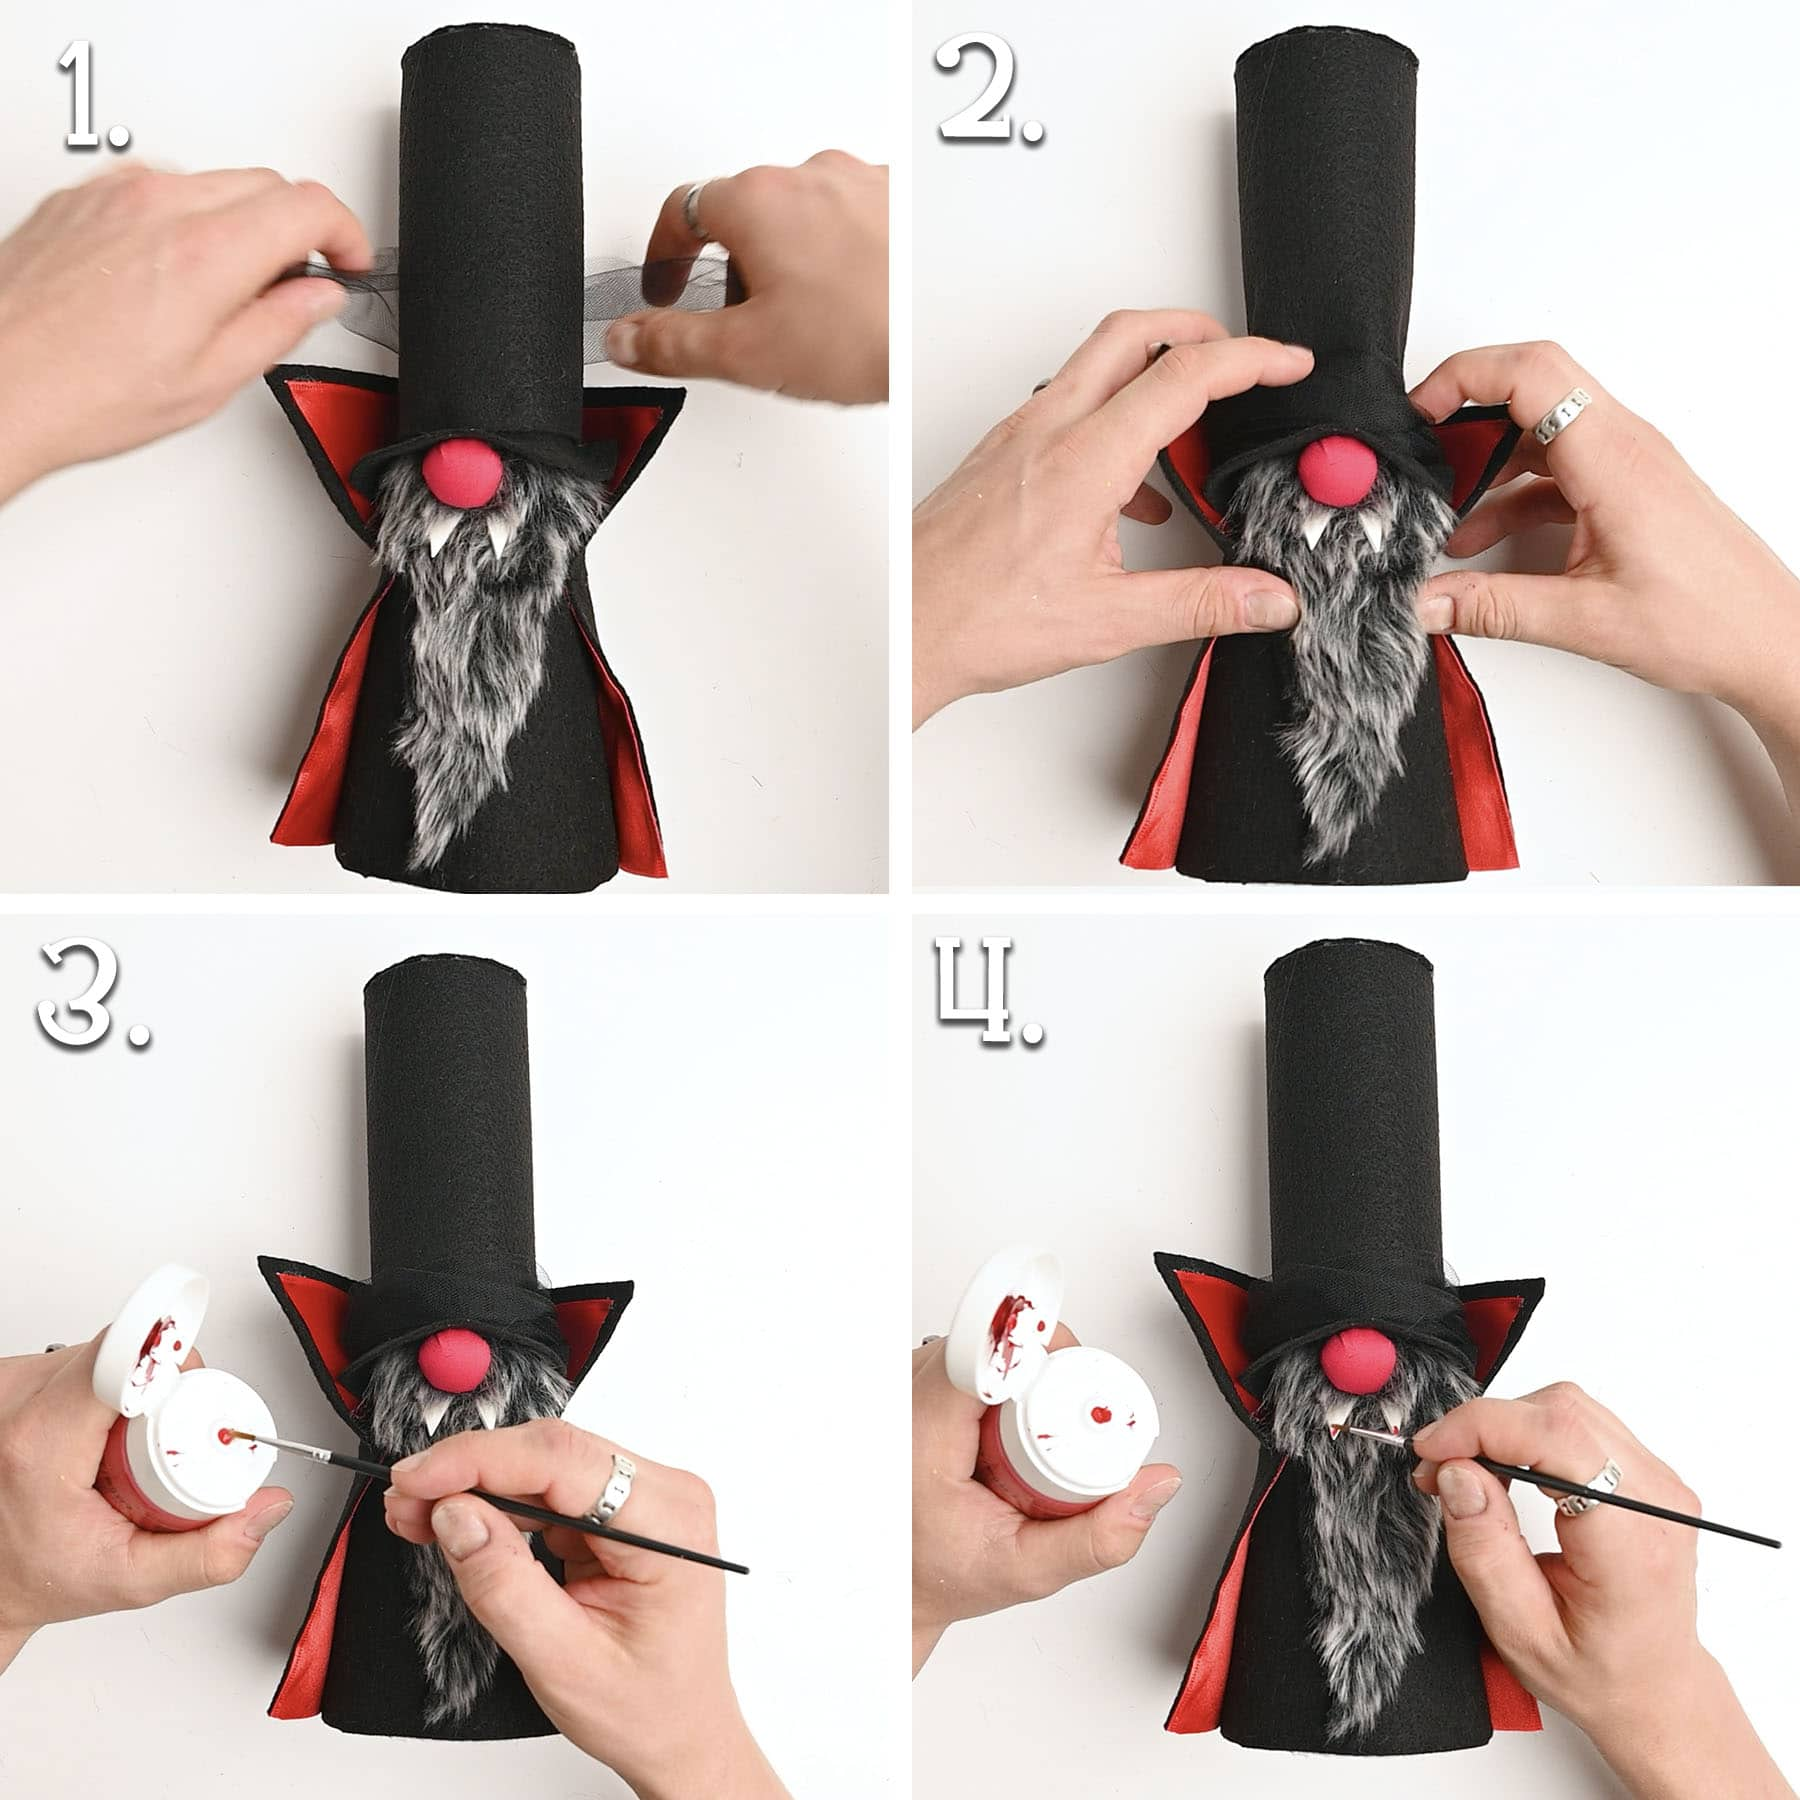 4 panels showing tulle being tied to the hat and red paint applied to the ends of the teeth.